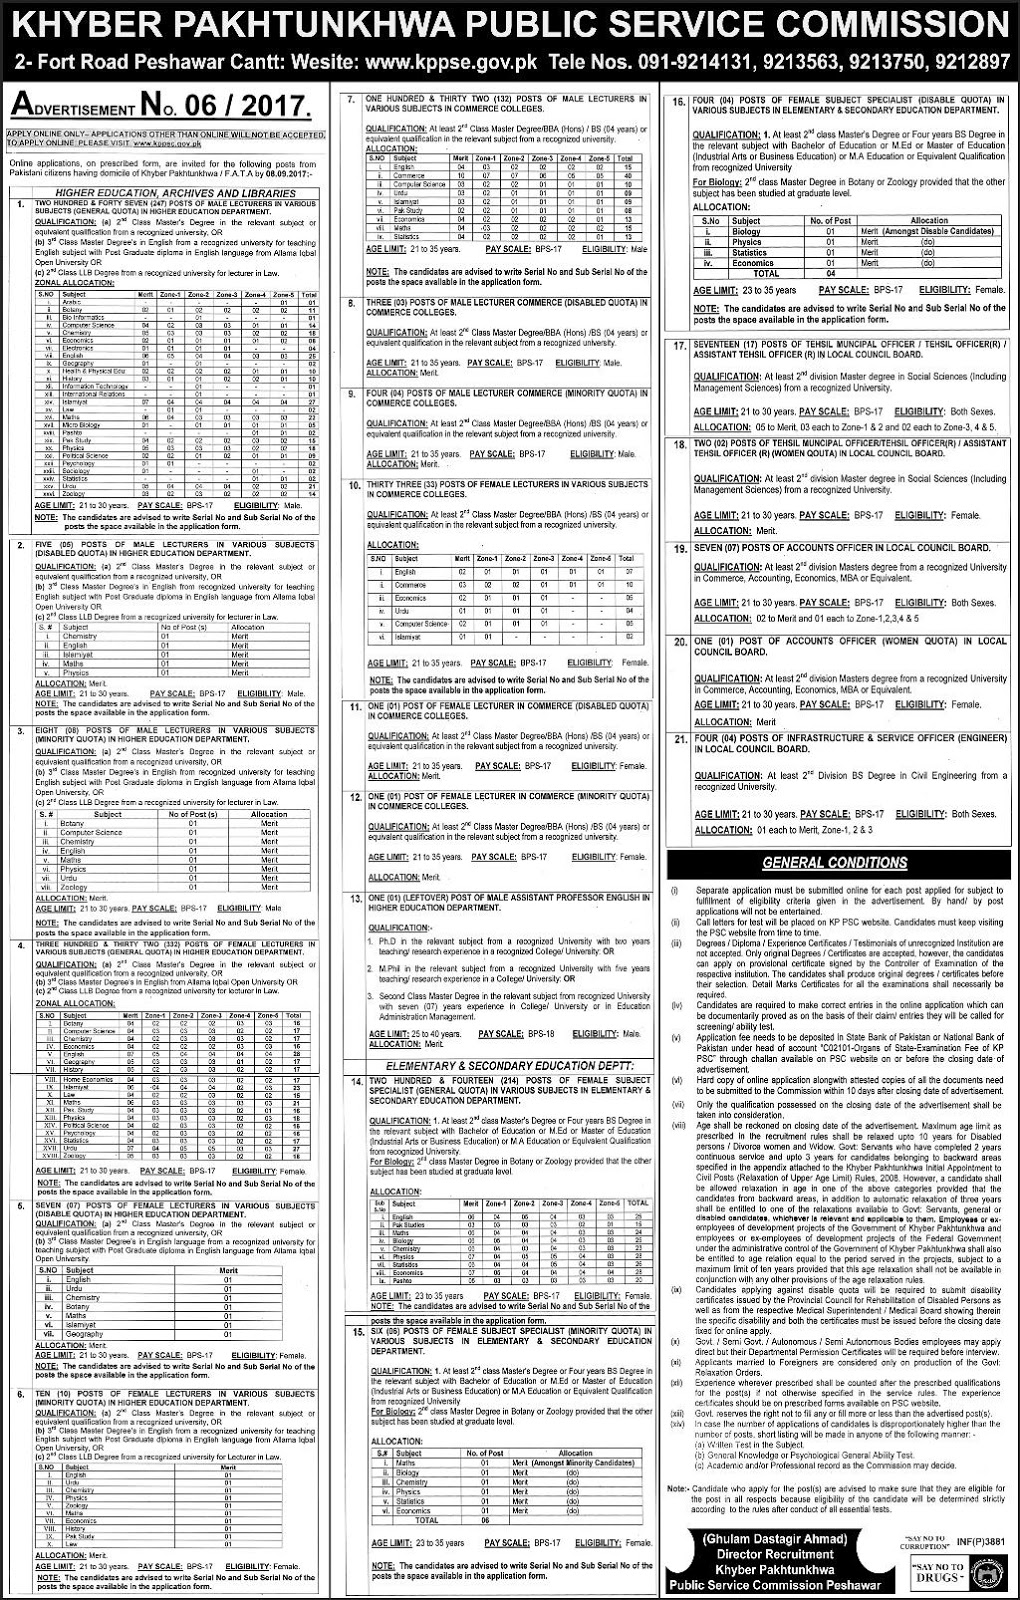 Jobs In Khyber Pakhtunkhwa Public Service Commission KPPSC Aug 2017